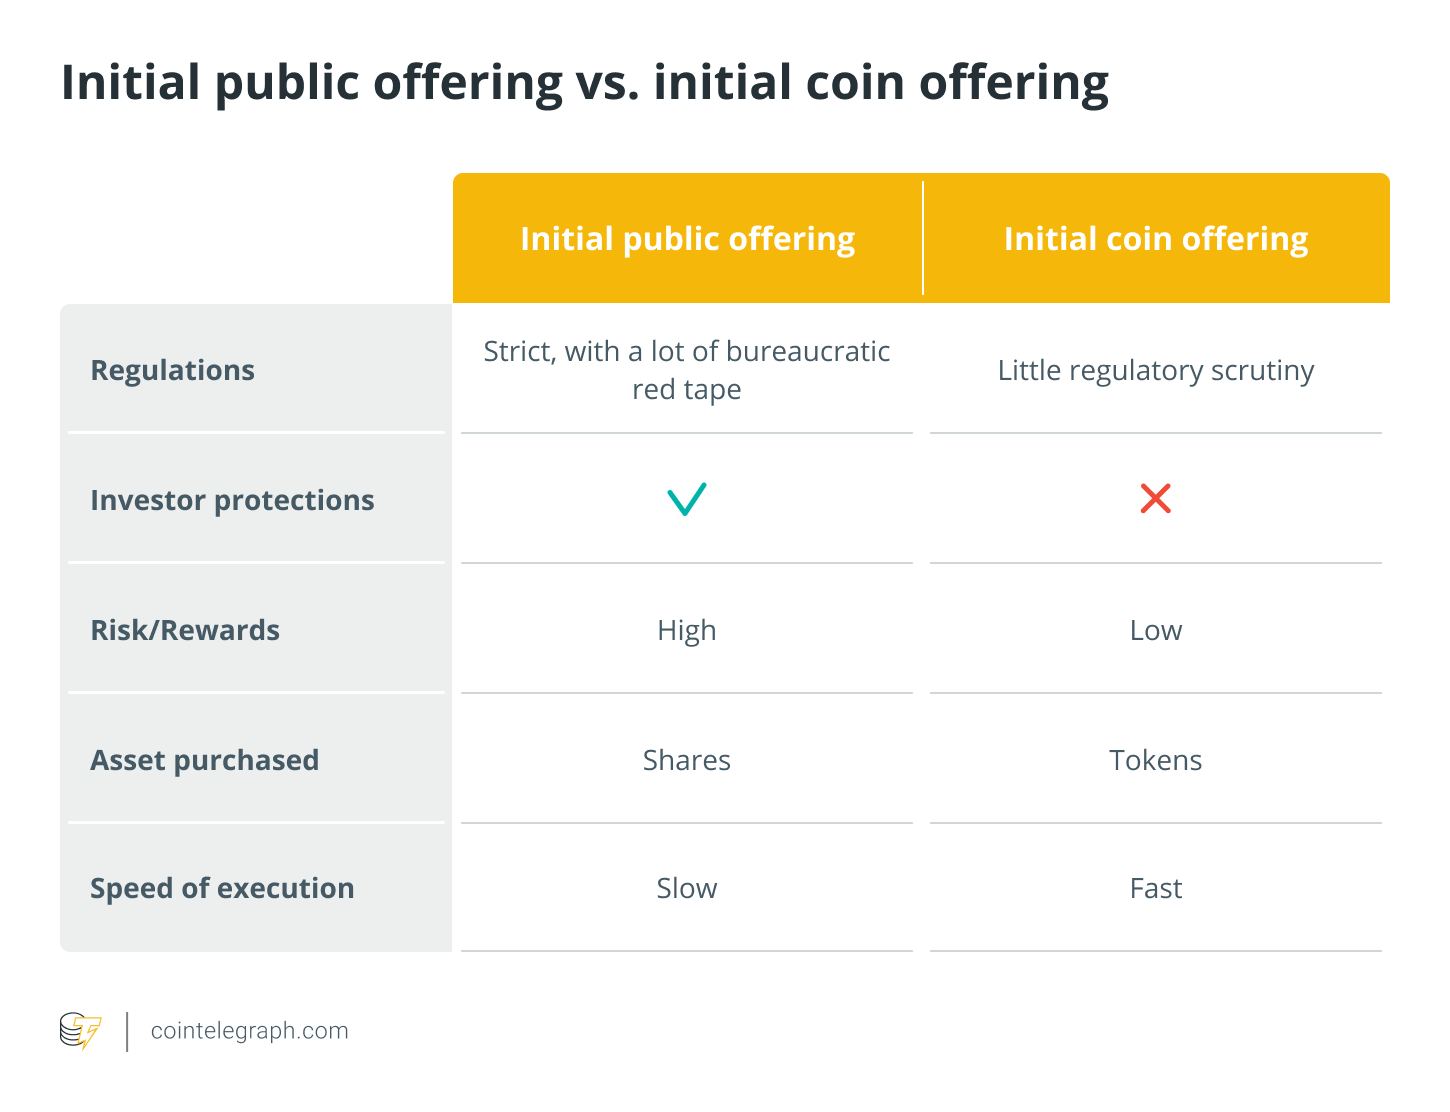 Initial public offering vs. initial coin offering